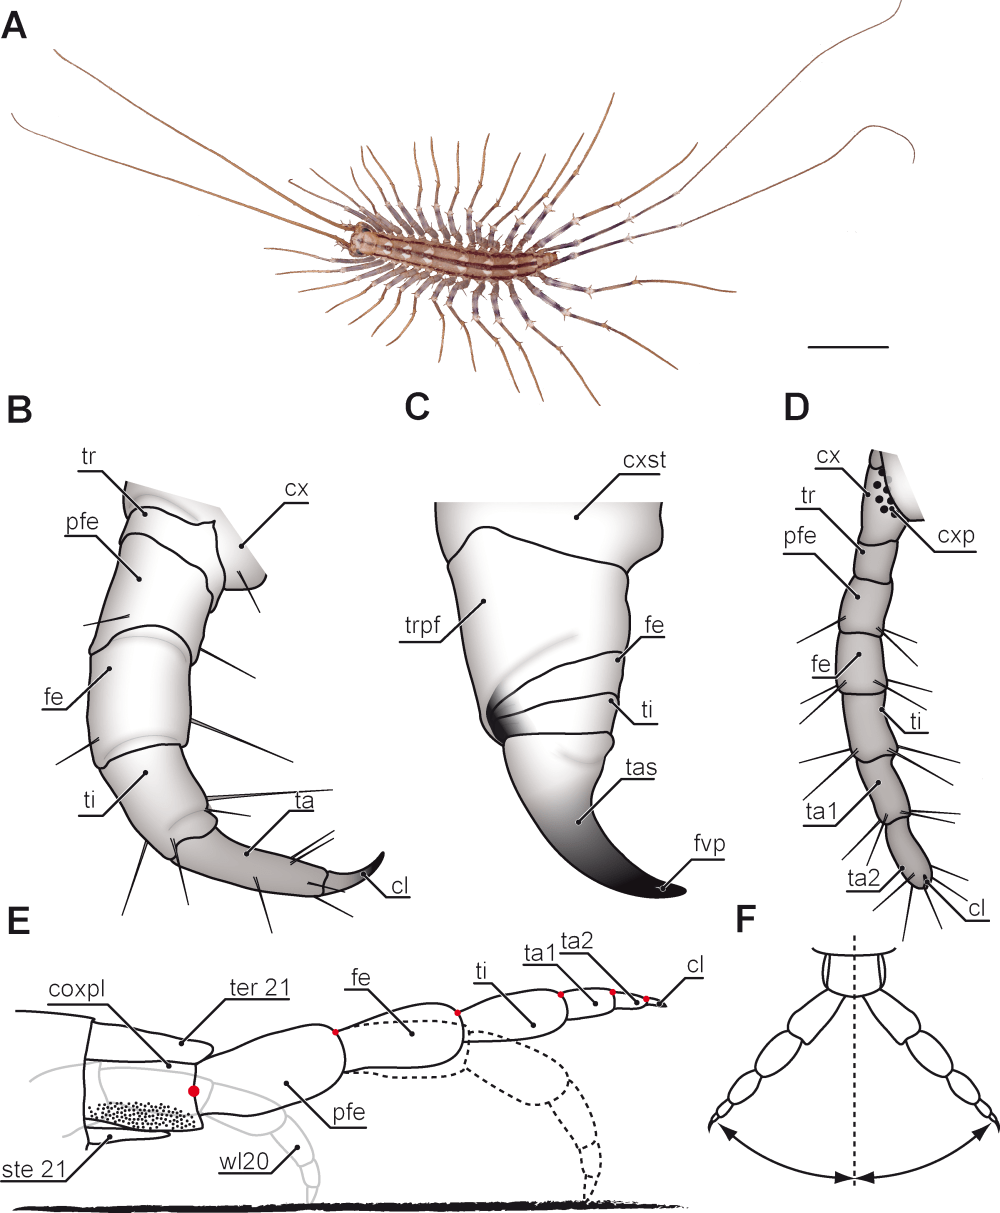 medium resolution of the ultimate legs of chilopoda myriapoda a review on their centipede anatomy diagram human centipede diagram